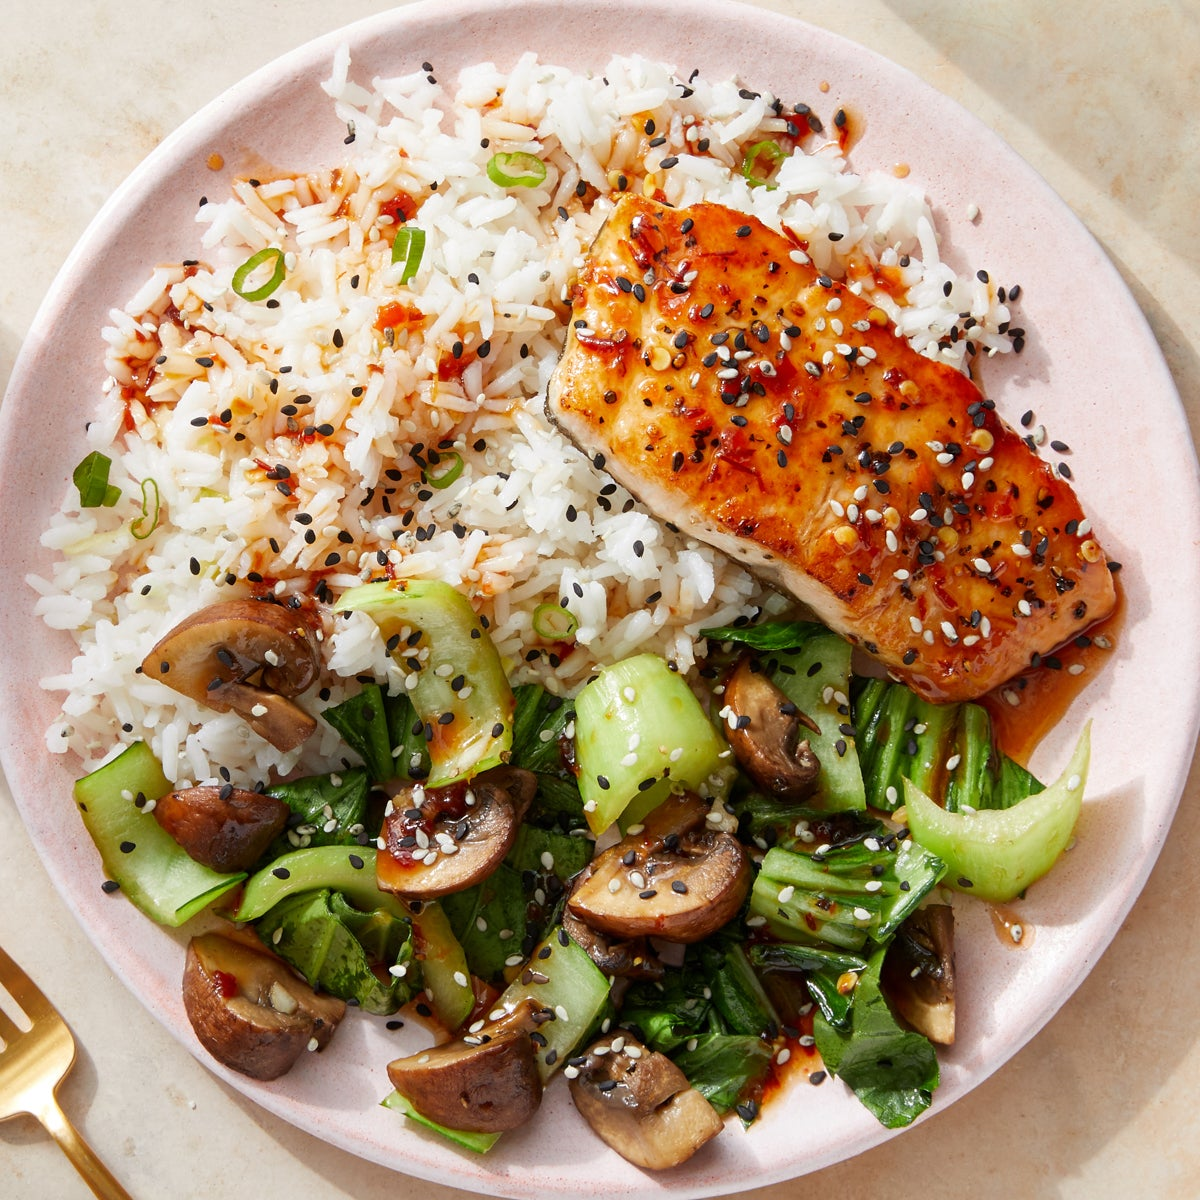 Seared Salmon & Garlic-Scallion Rice with Spicy Sesame Sauce